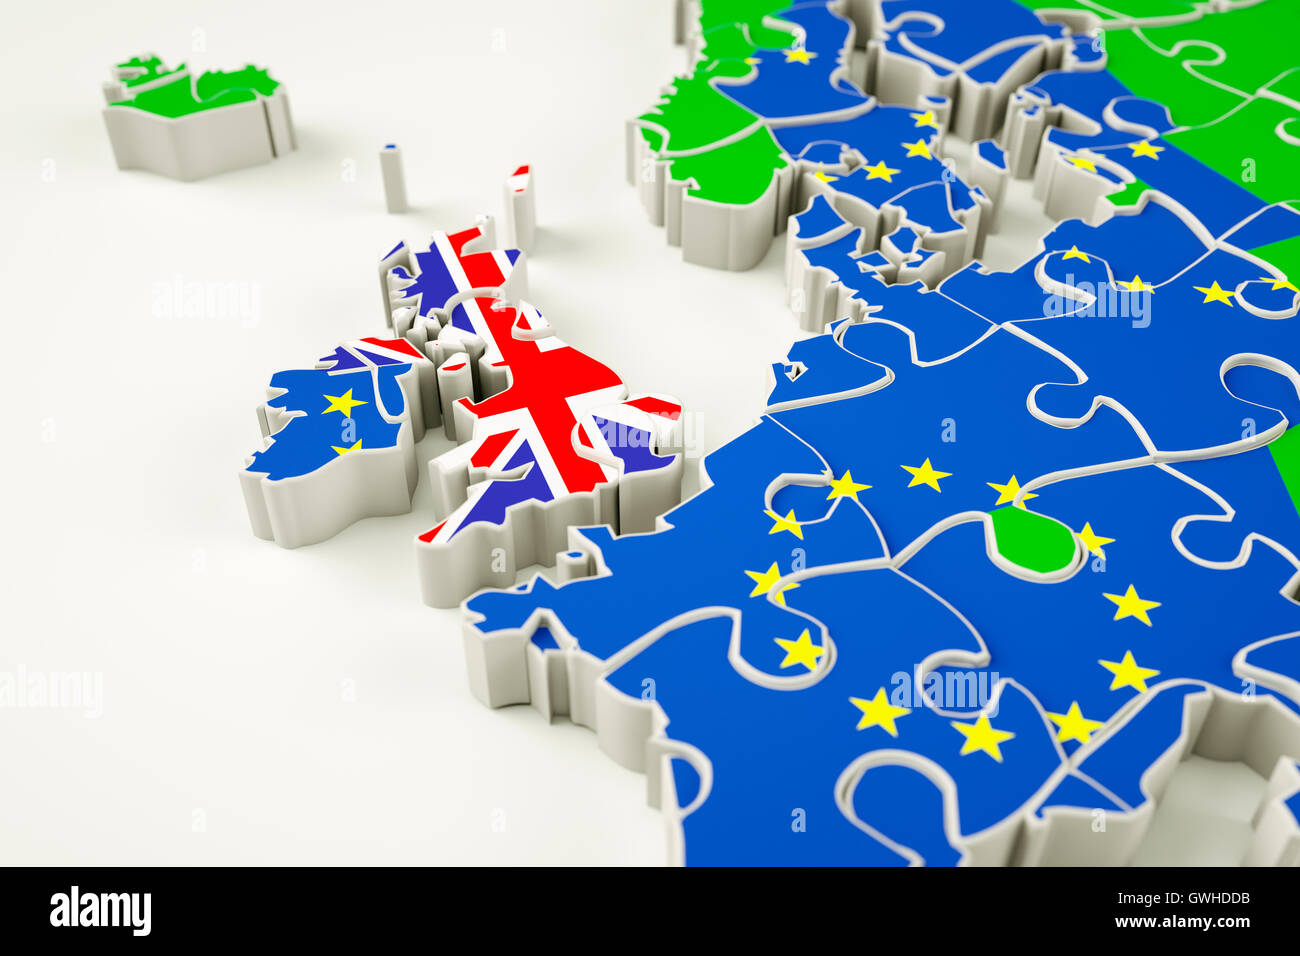 Brexit concept puzzle - representing Brexit, the UK exit, the EU referendum, trade deal etc. - Stock Image